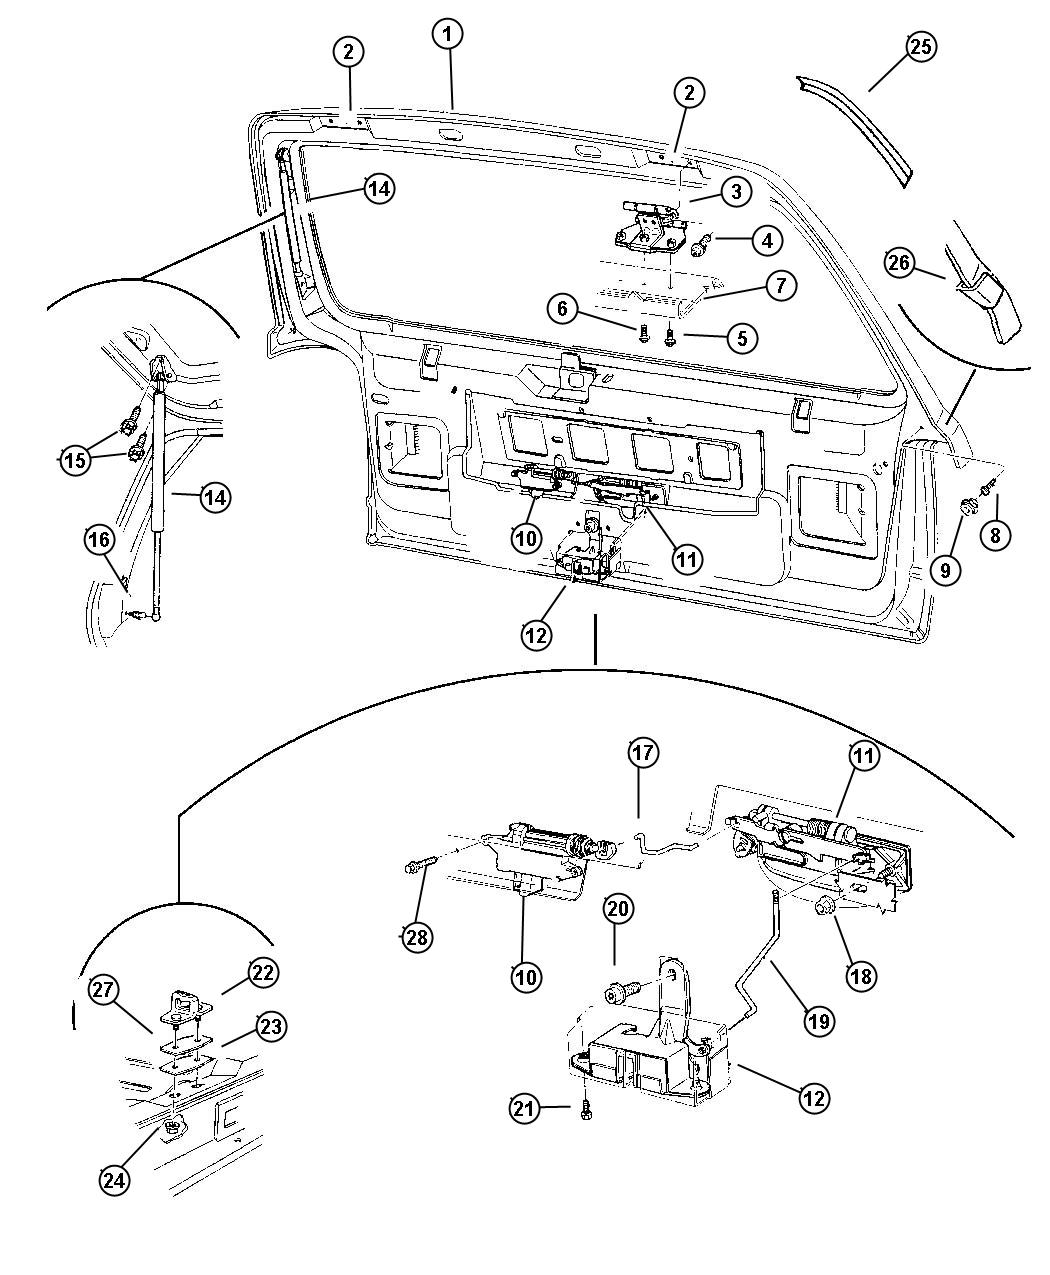 1995 Jeep Grand Cherokee Door Hinge Diagram